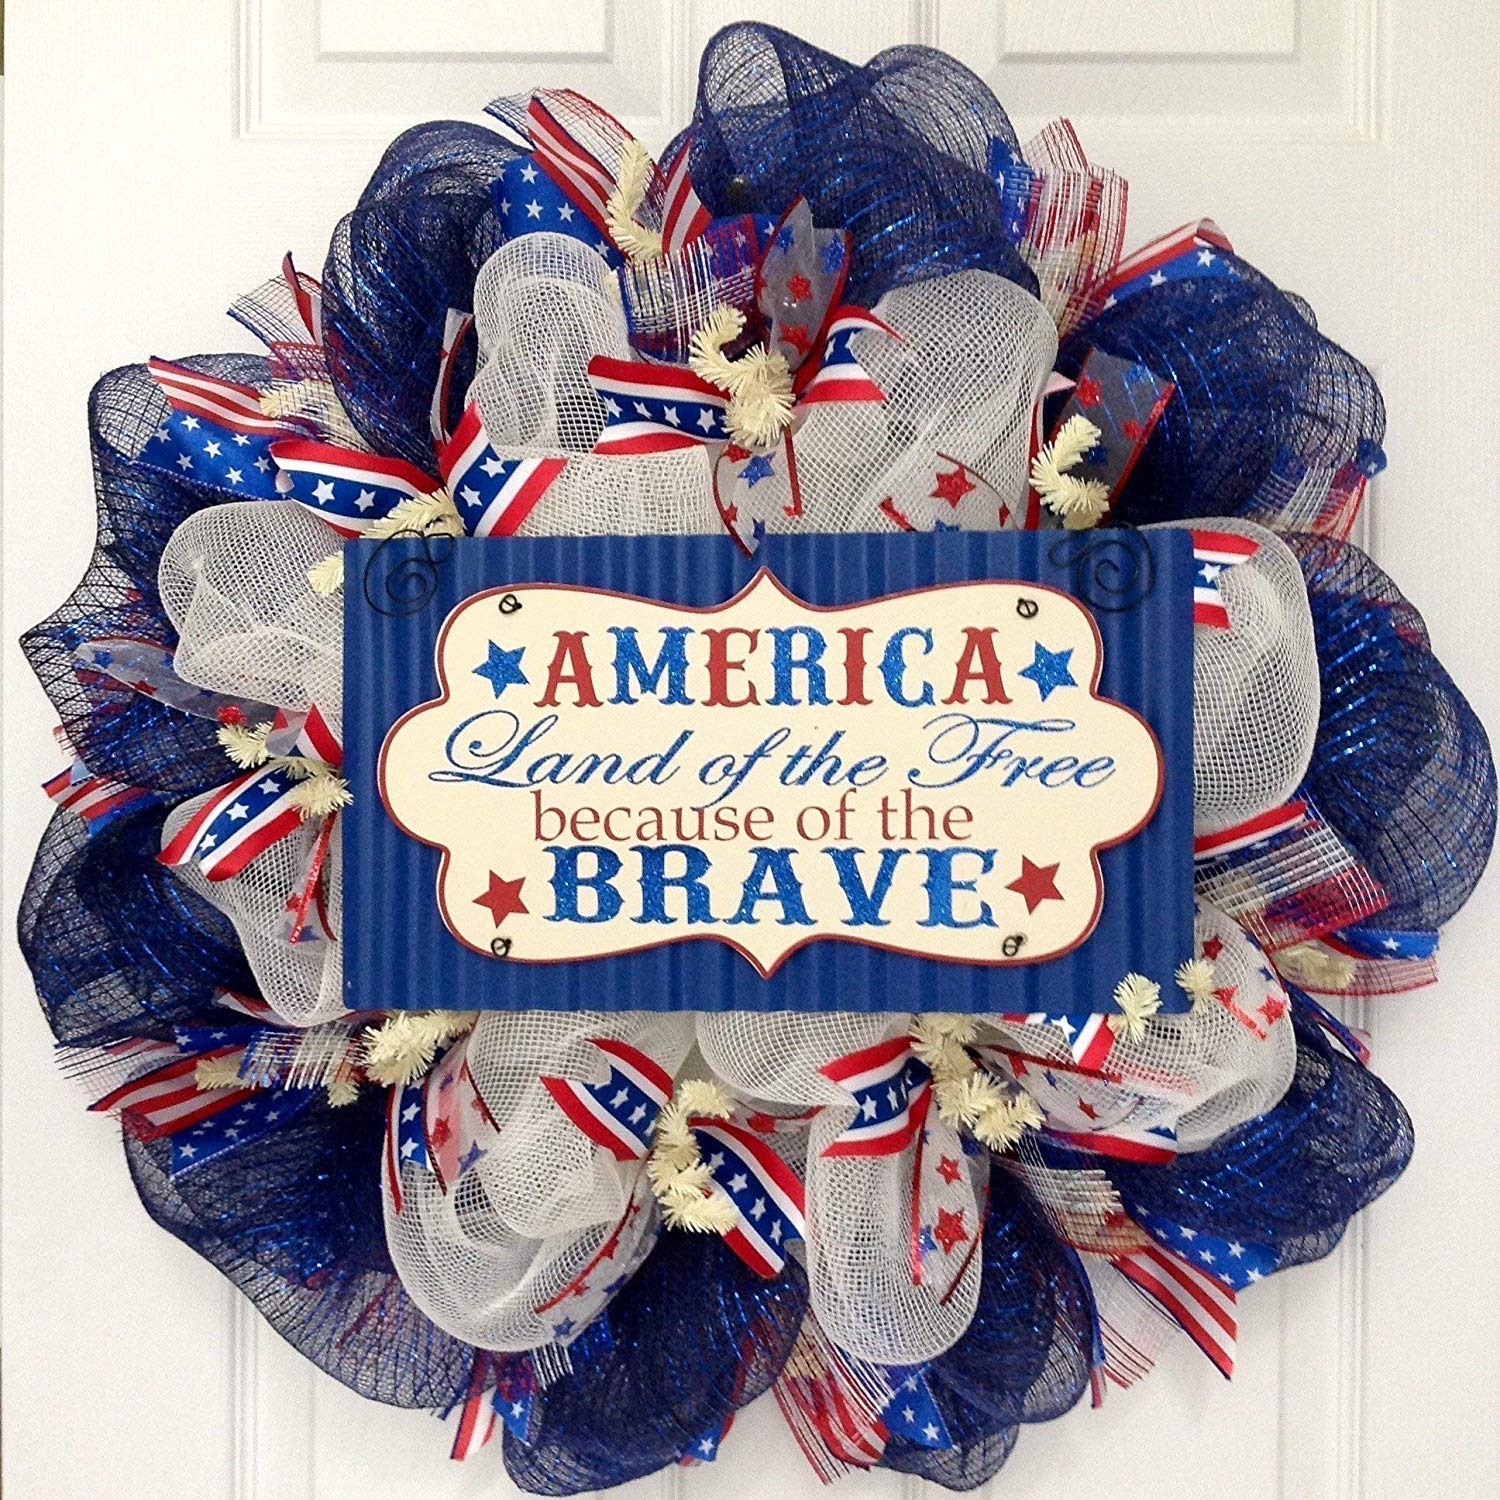 America Land of the Free Because of the Brave Patriotic Handmade Deco Mesh Wreath